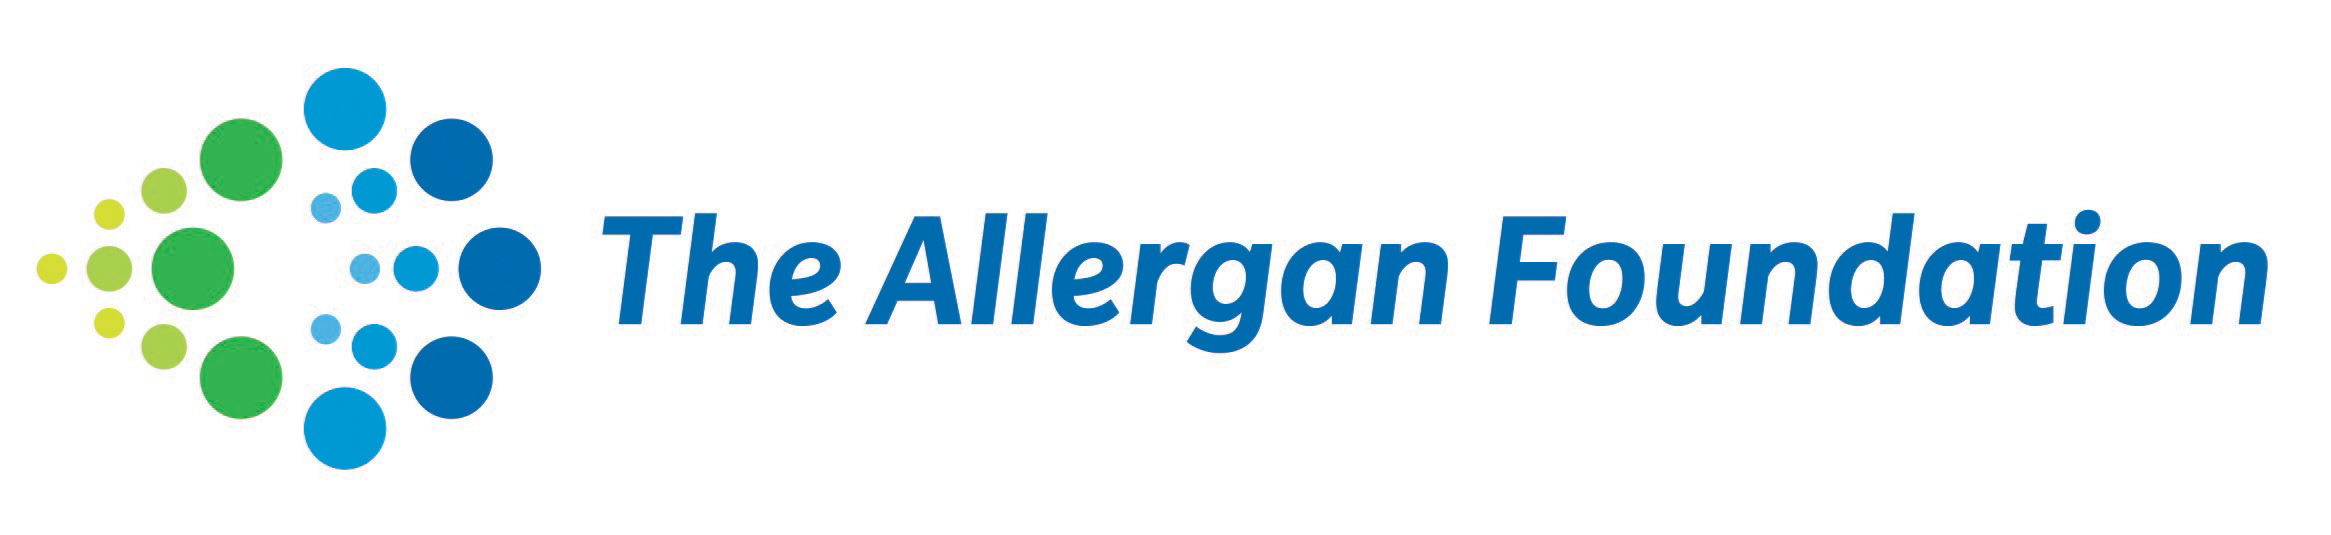 allergan-foundation